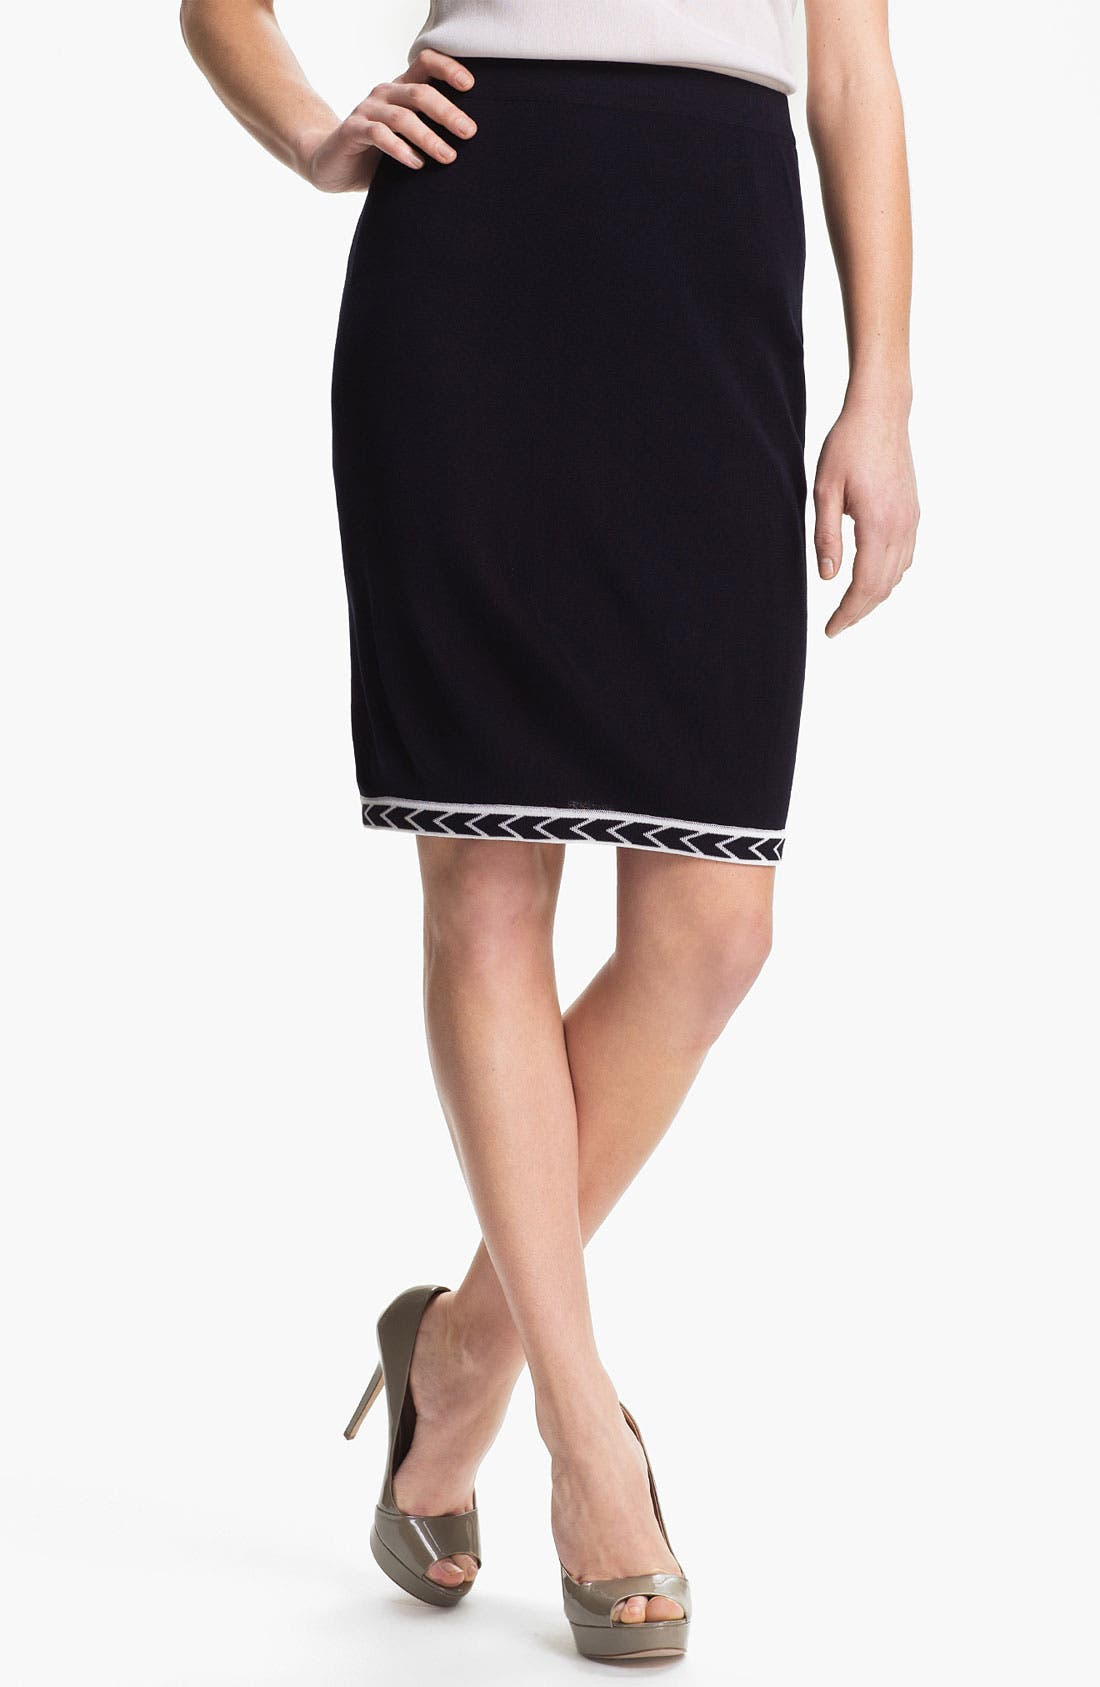 Alternate Image 1 Selected - Exclusively Misook 'Adrienne' Skirt (Petite) (Online Only)